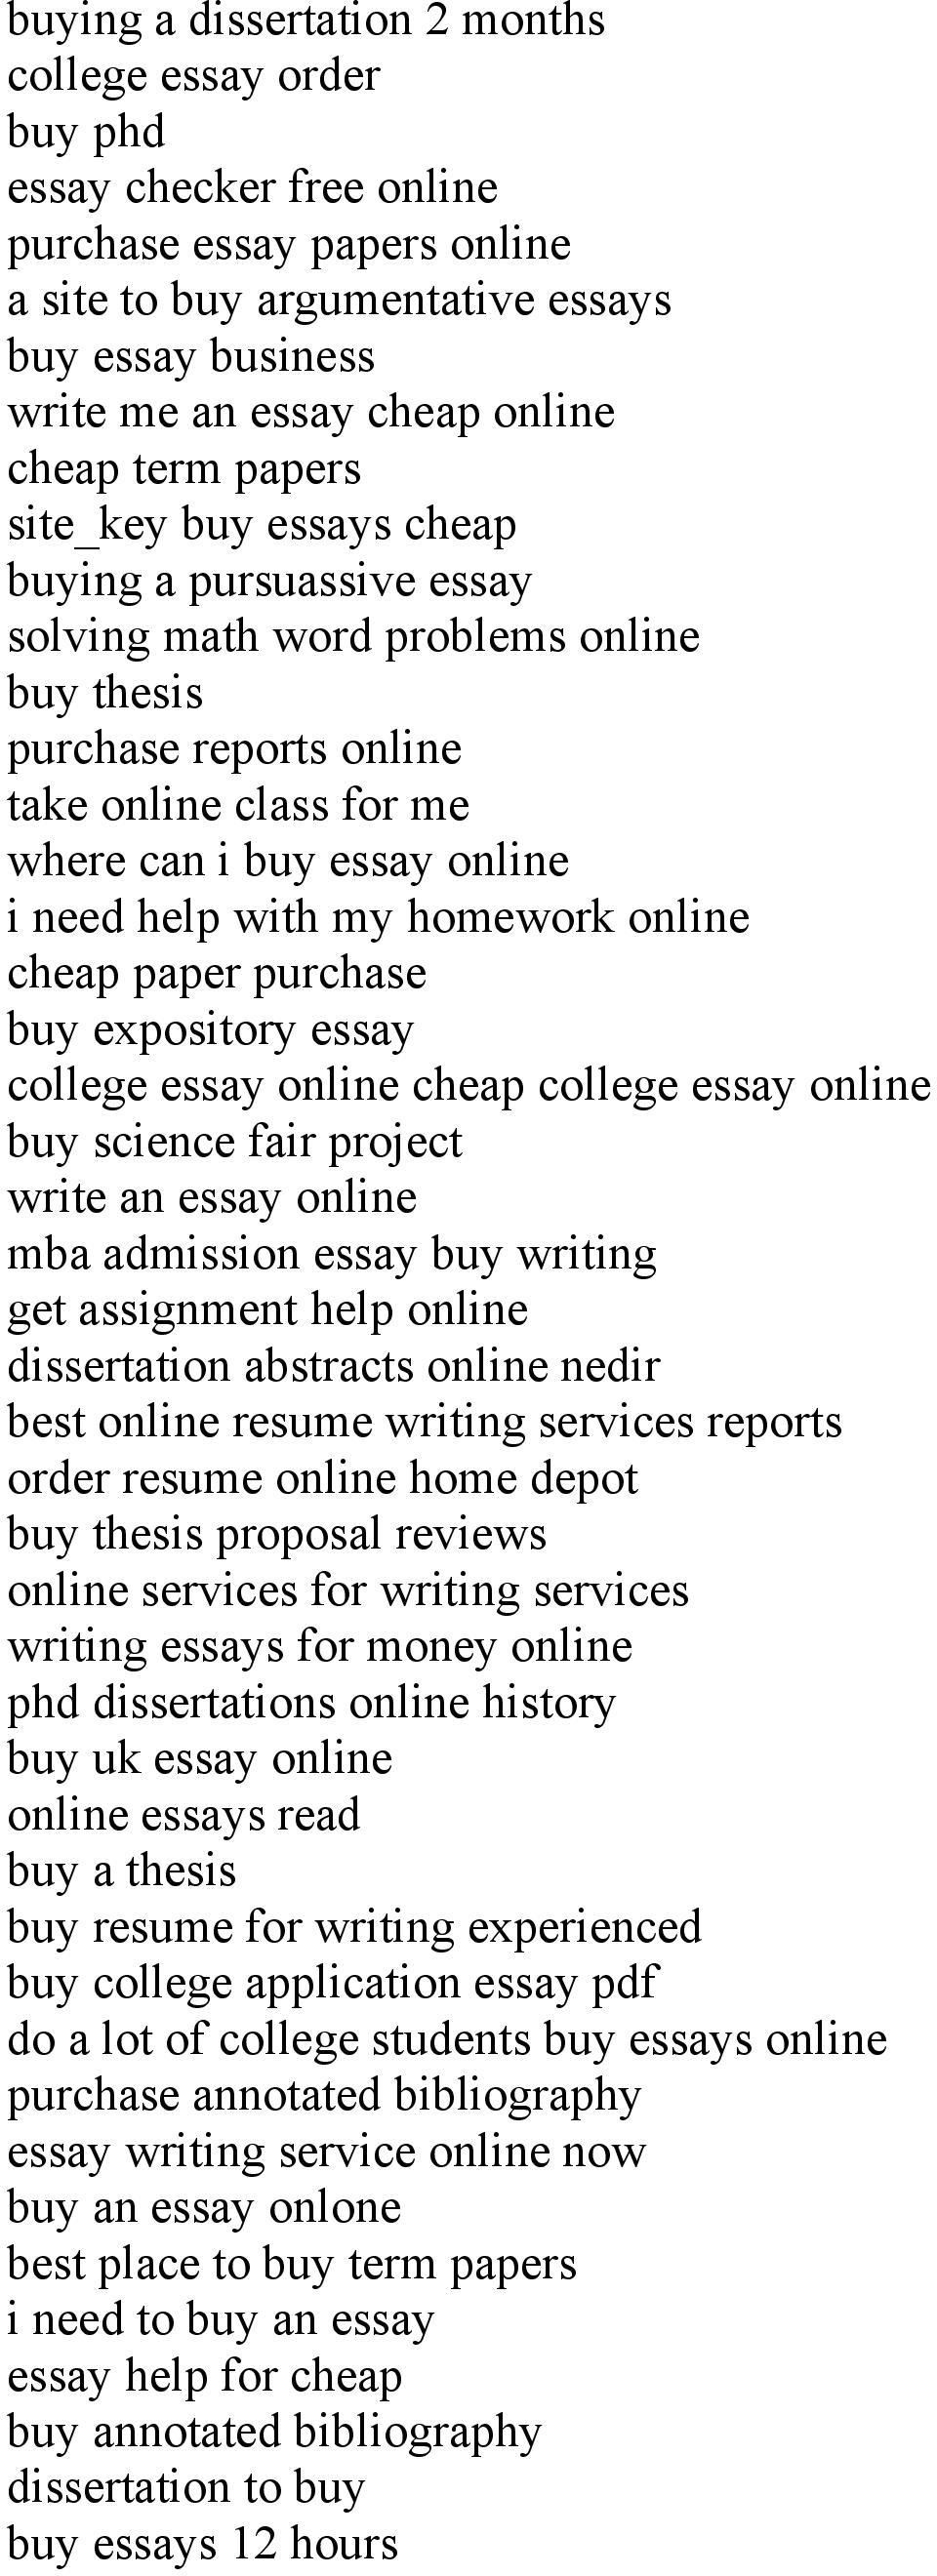 need help with my homework online cheap paper purchase buy expository essay college essay online cheap college essay online buy science fair project write an essay online mba admission essay buy